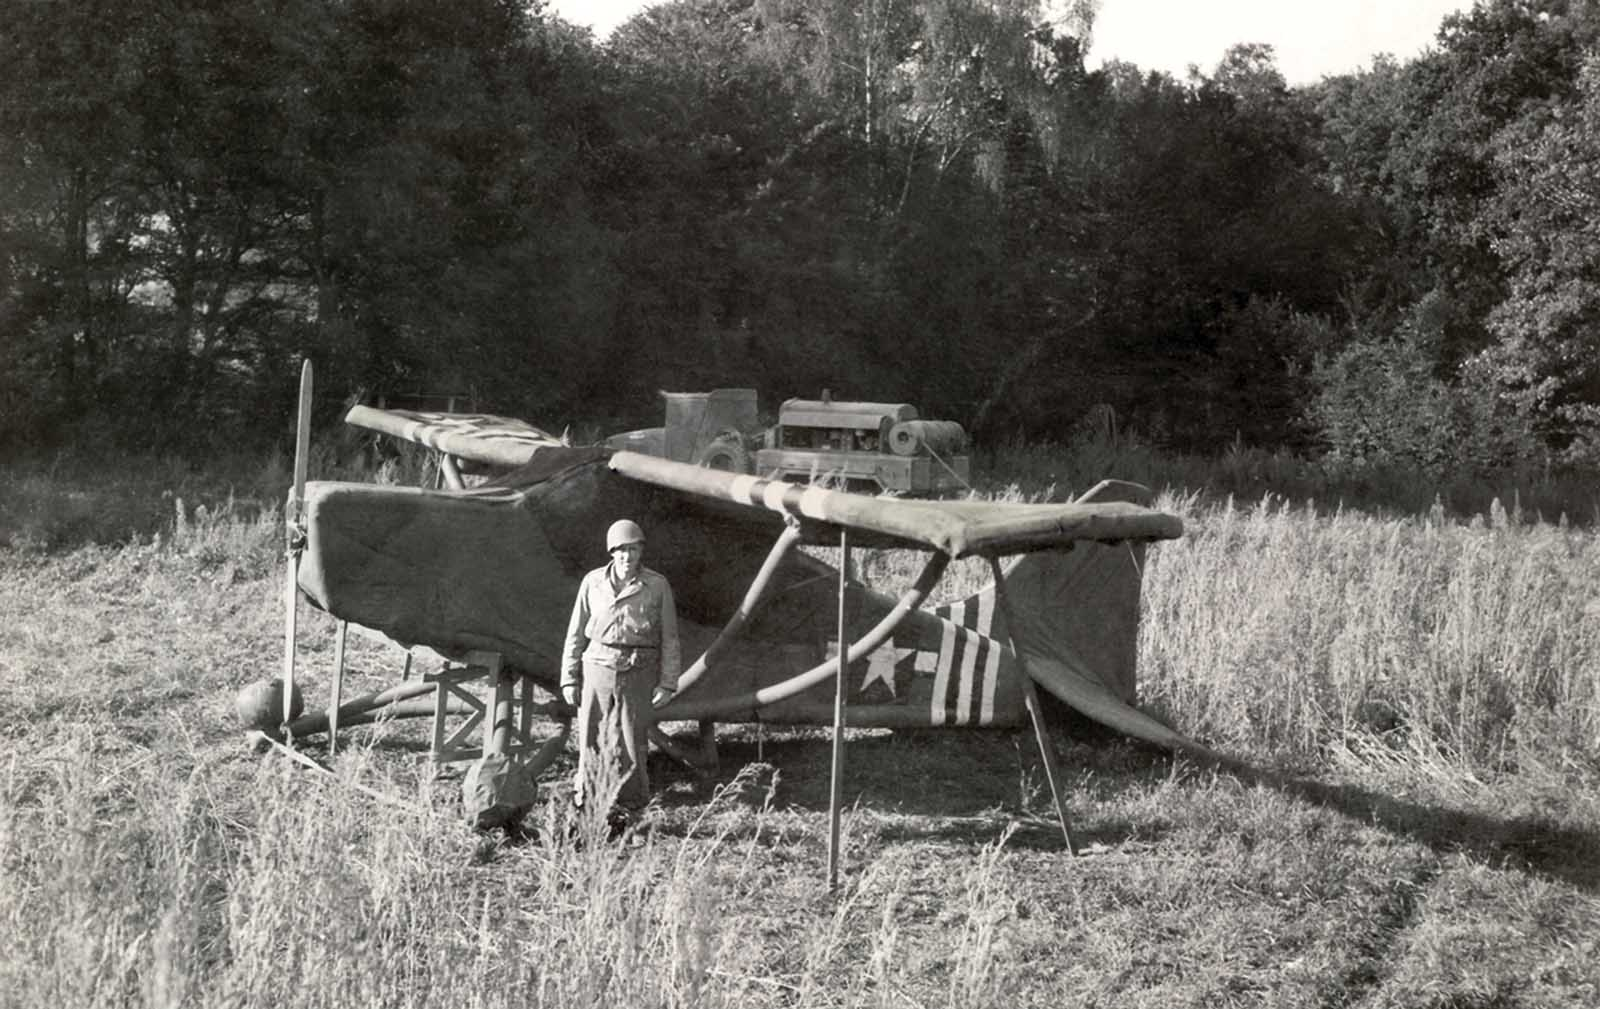 An inflated rubber L-5 reconnaissance plane used by the Ghost Army at one of the last operations on the western border of Germany. Their last performance, Operation Viersen, successfully fooled German forces into converging to defend a point on the Rhine miles away from the actual attack.